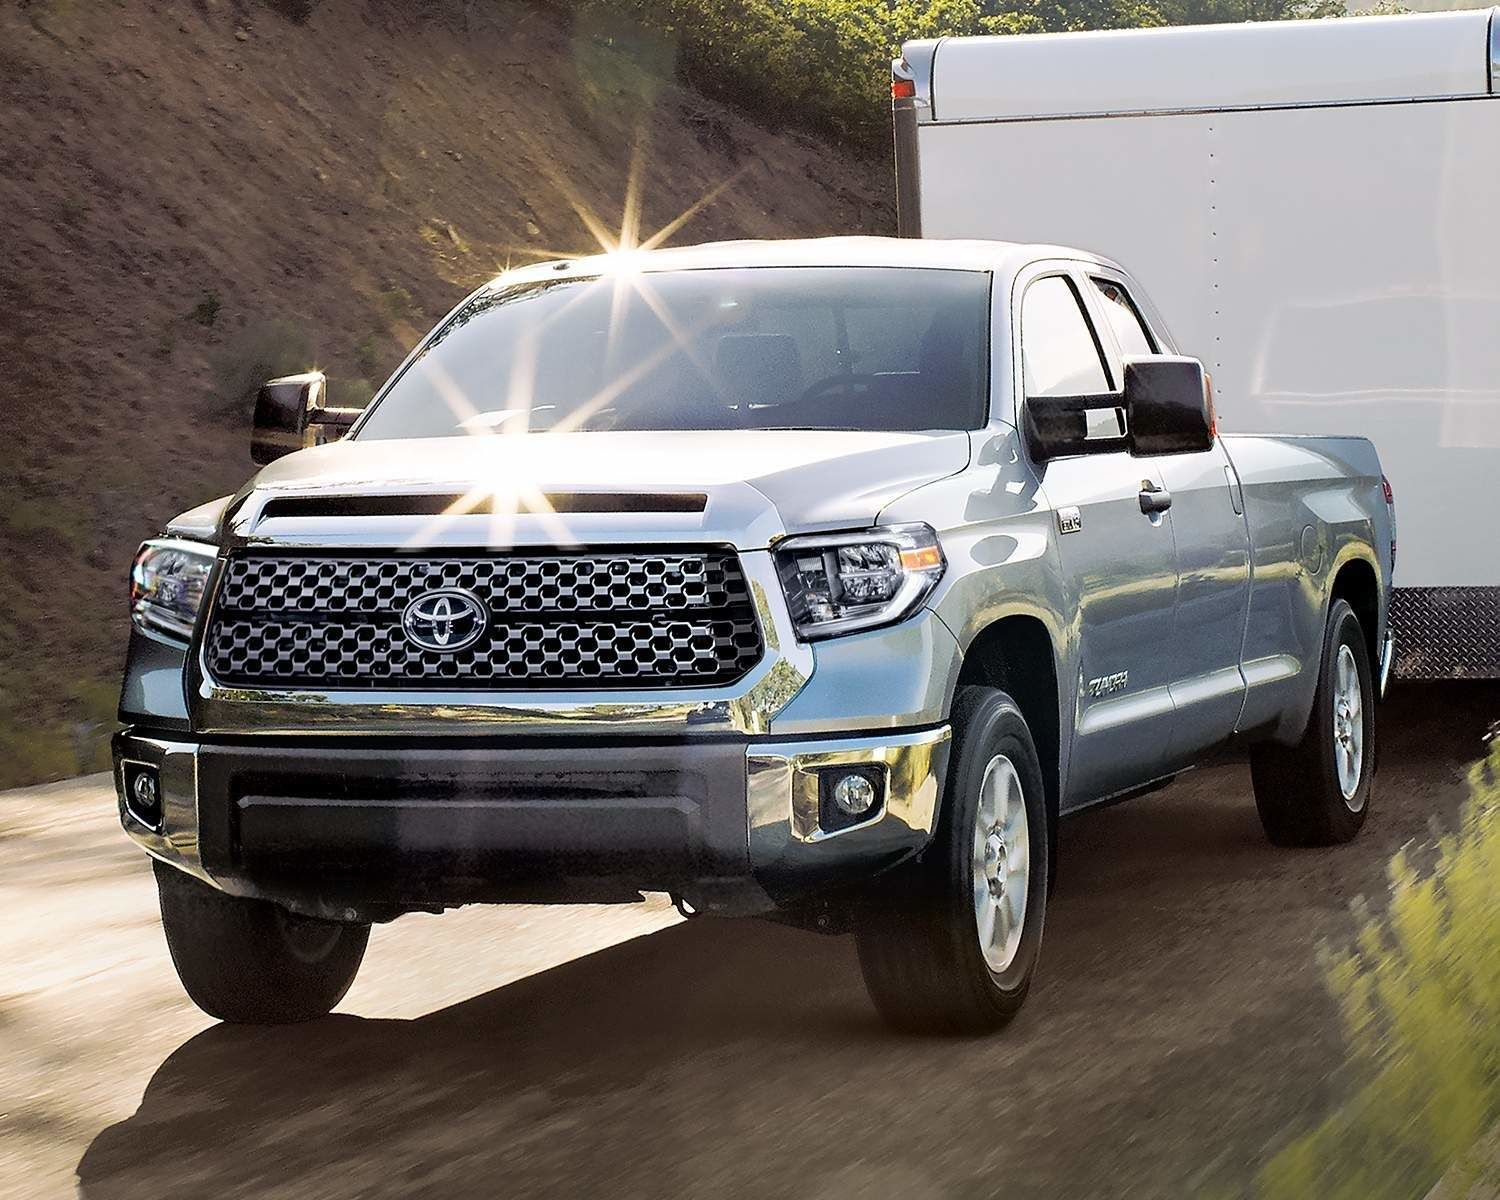 Tundra Double Cab SR5 Plus TRD Off Road Package shown in Silver Sky Metallic